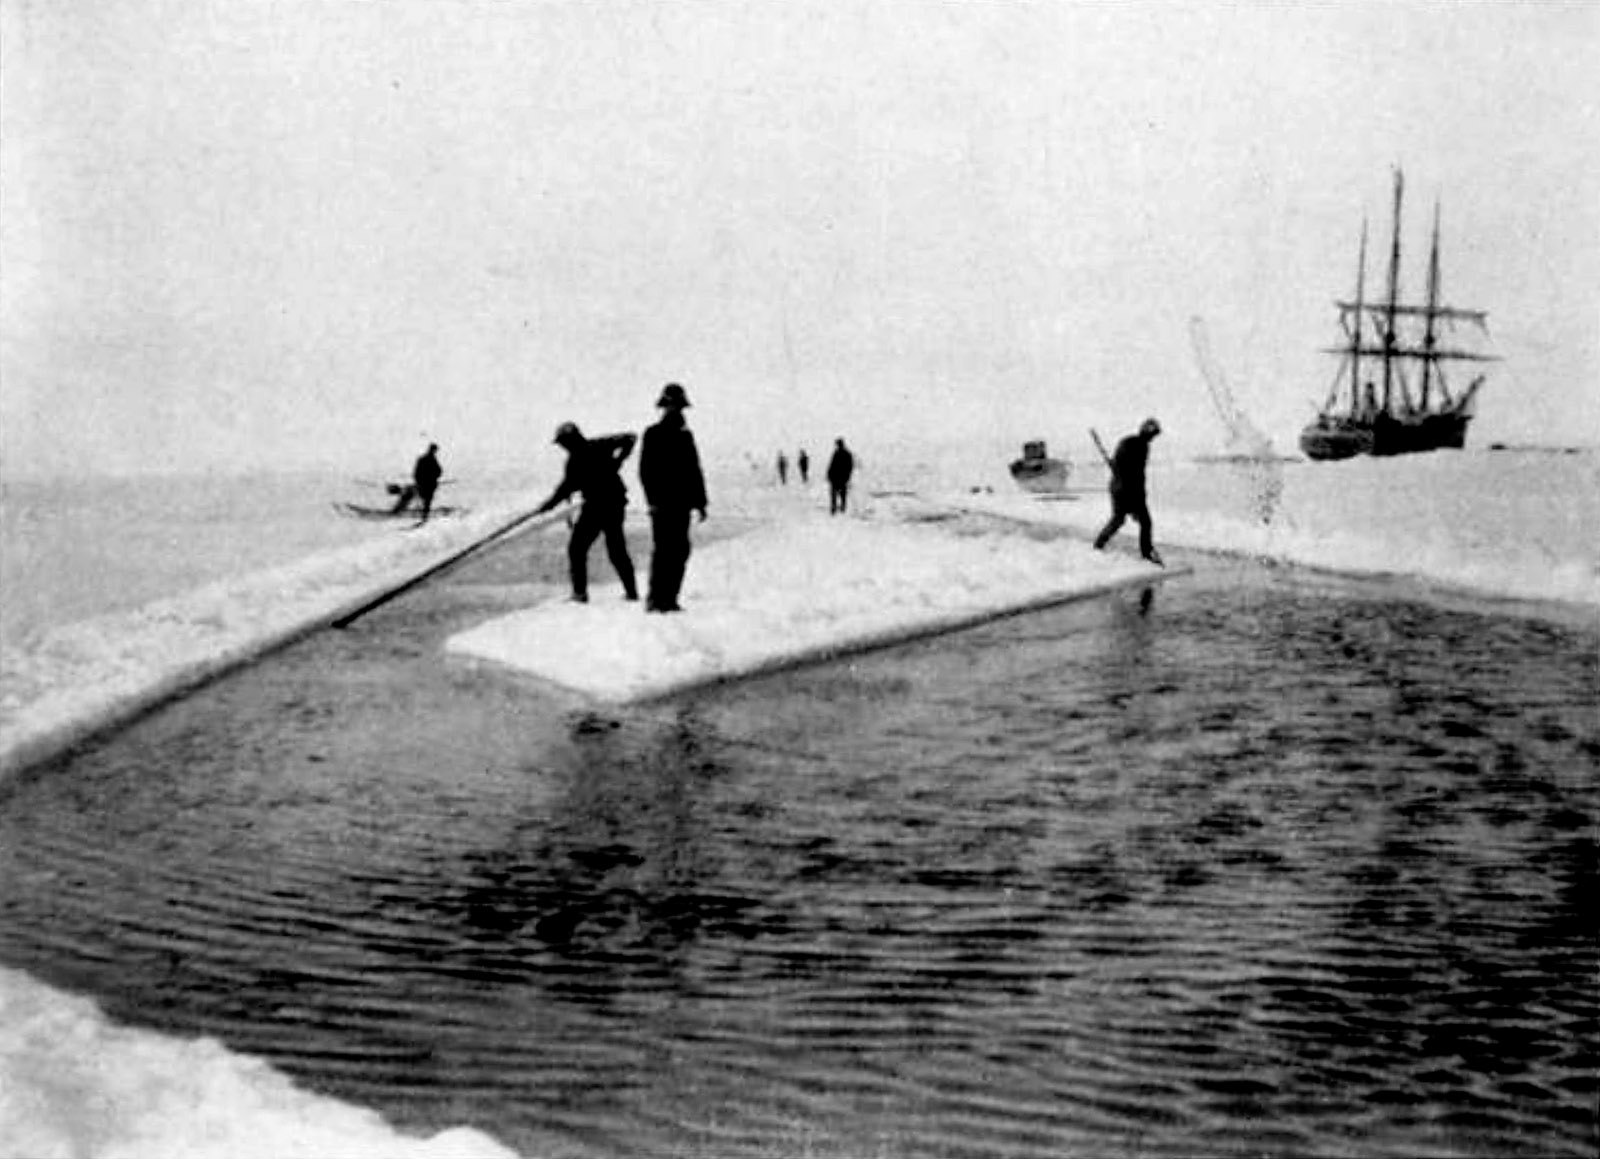 Crew members cutting a canal through the ice to free the Belgica